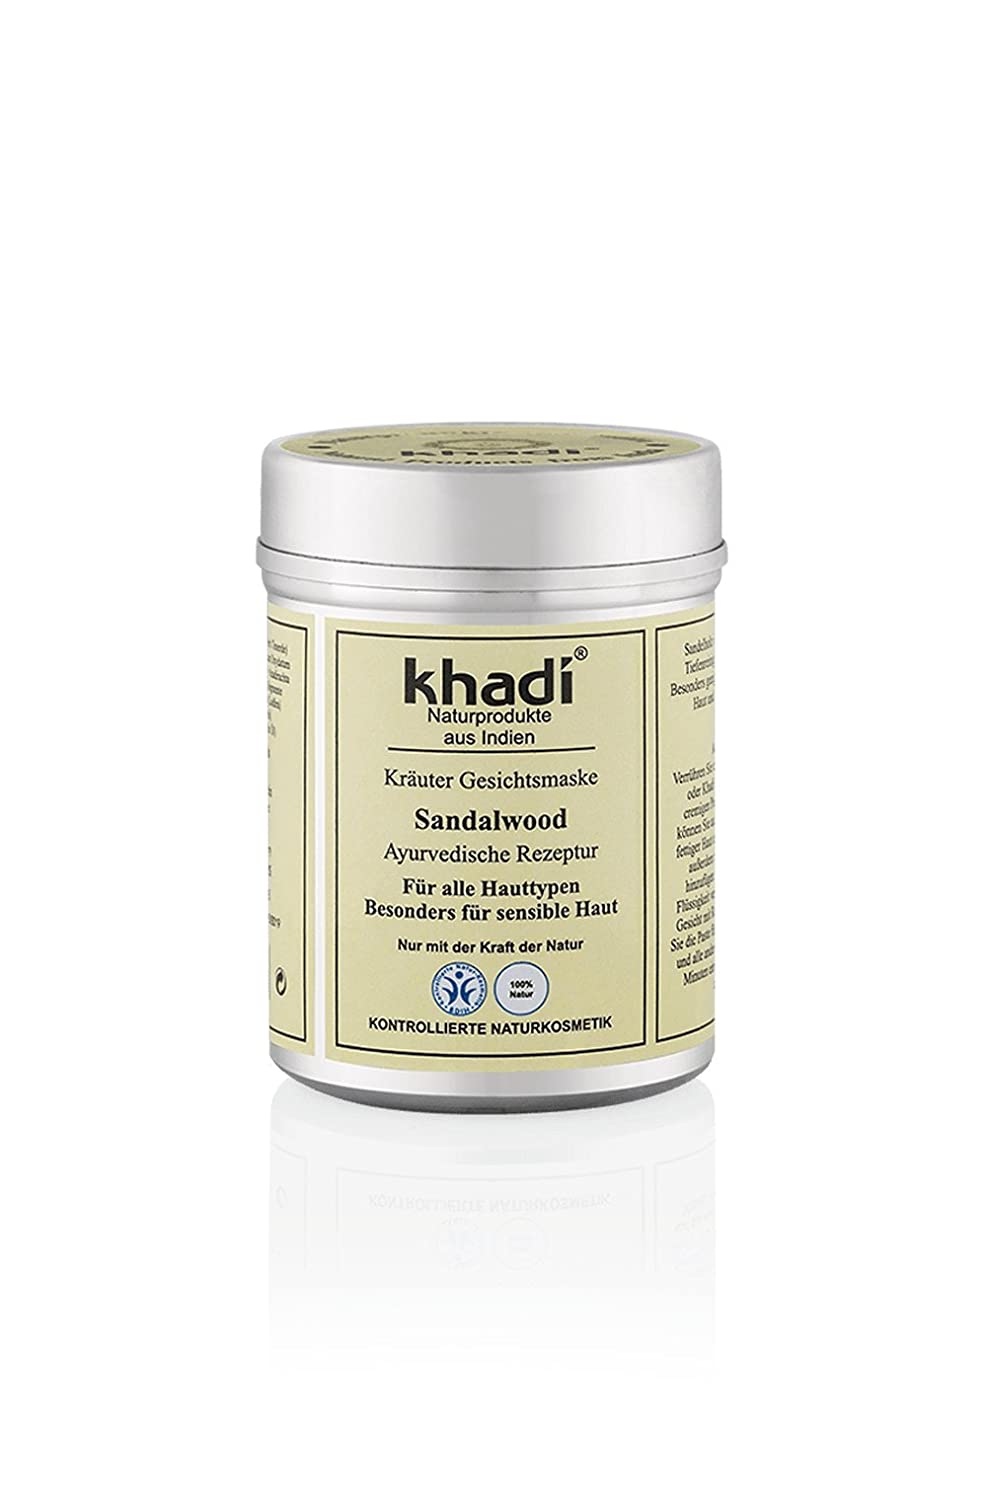 KHADI - Herbal Face Mask - Sandalwood - For Enlarged Pores, Blemishes, Pigmentation & Sunburns 8906020511231